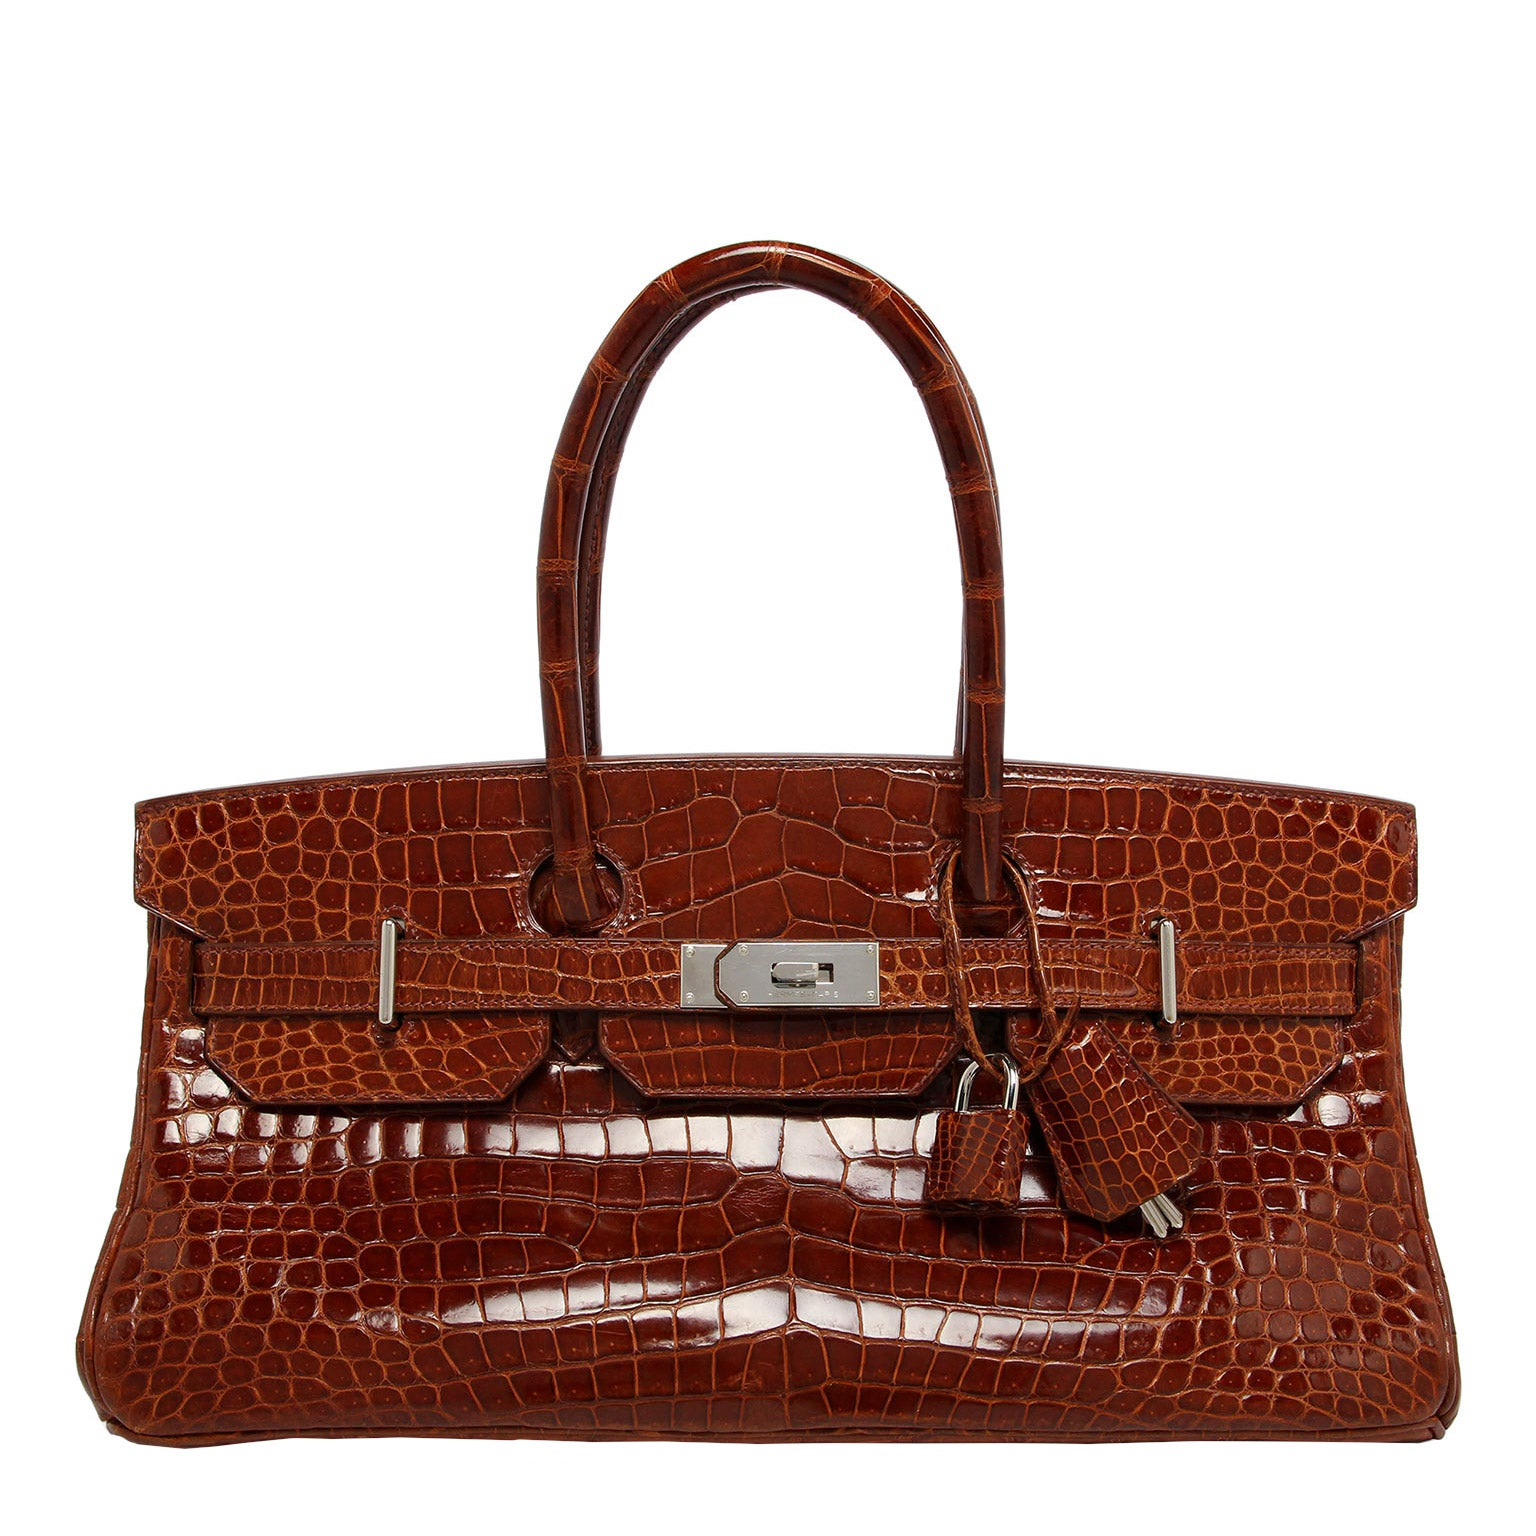 fc387160a038 Hermes JPG Shoulder Birkin Miel Shiny Porosus Croc Palladium Hardware For  Sale at 1stdibs